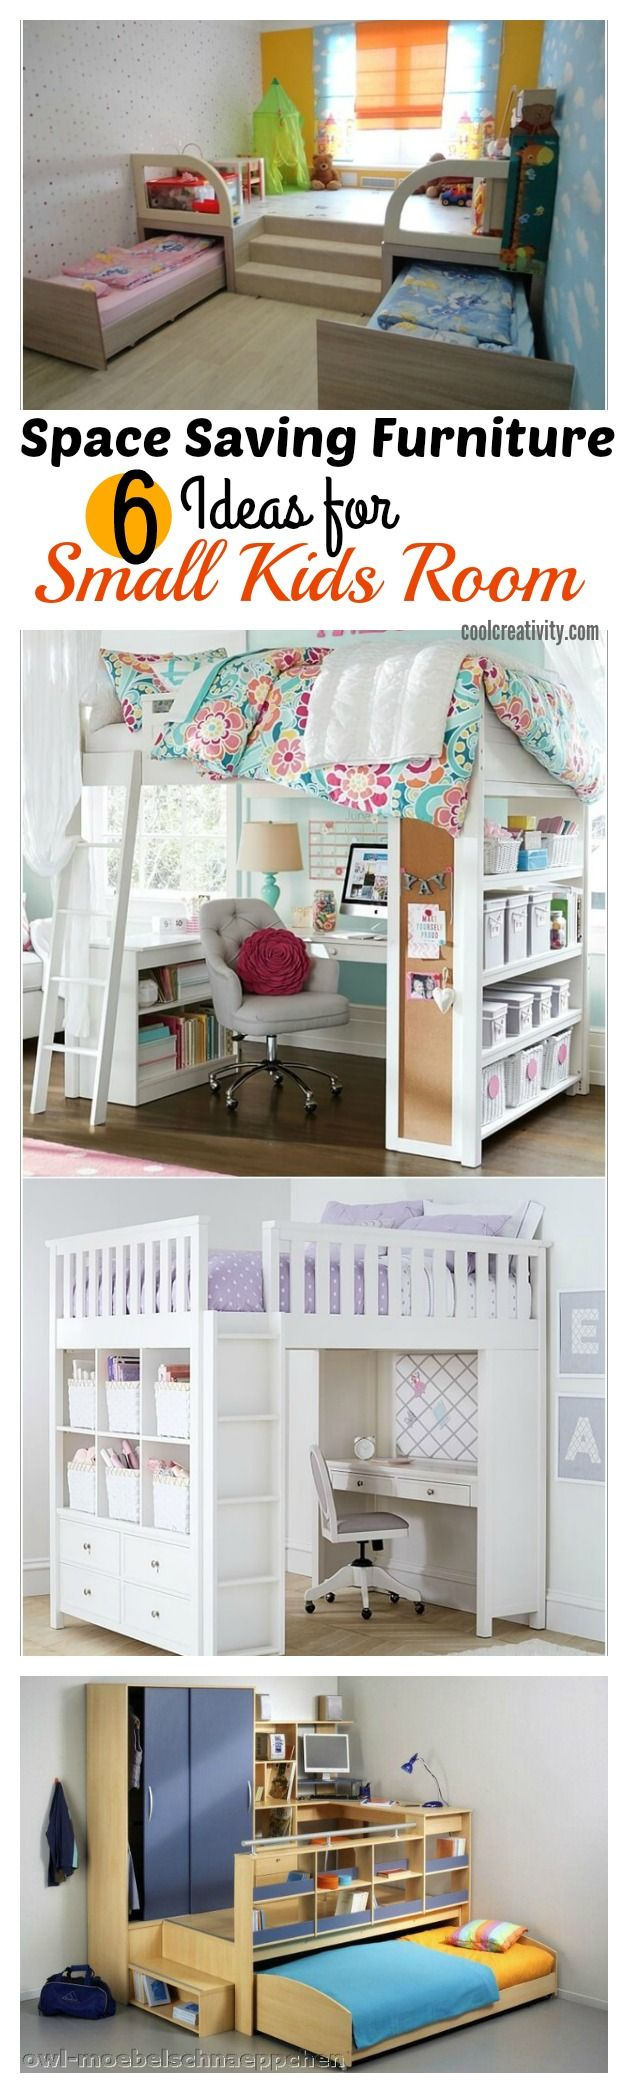 best 20 kids room ideas on pinterest kids storage book storage